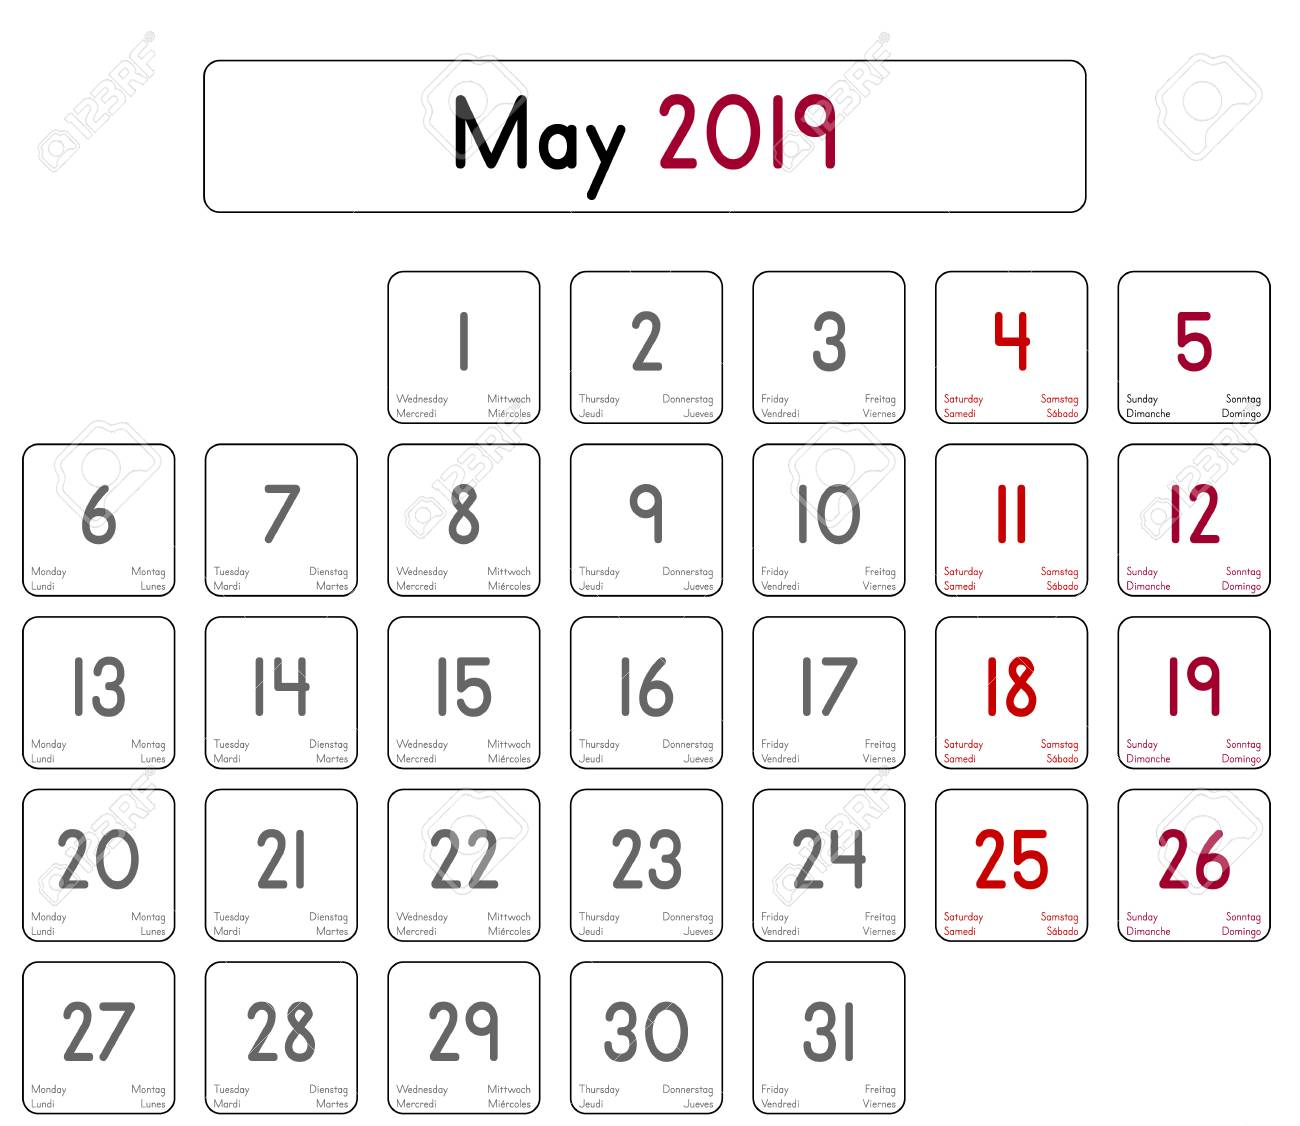 Daily Calendar | Detailed Daily Calendar Of The Month Of May 2019 Royalty Free